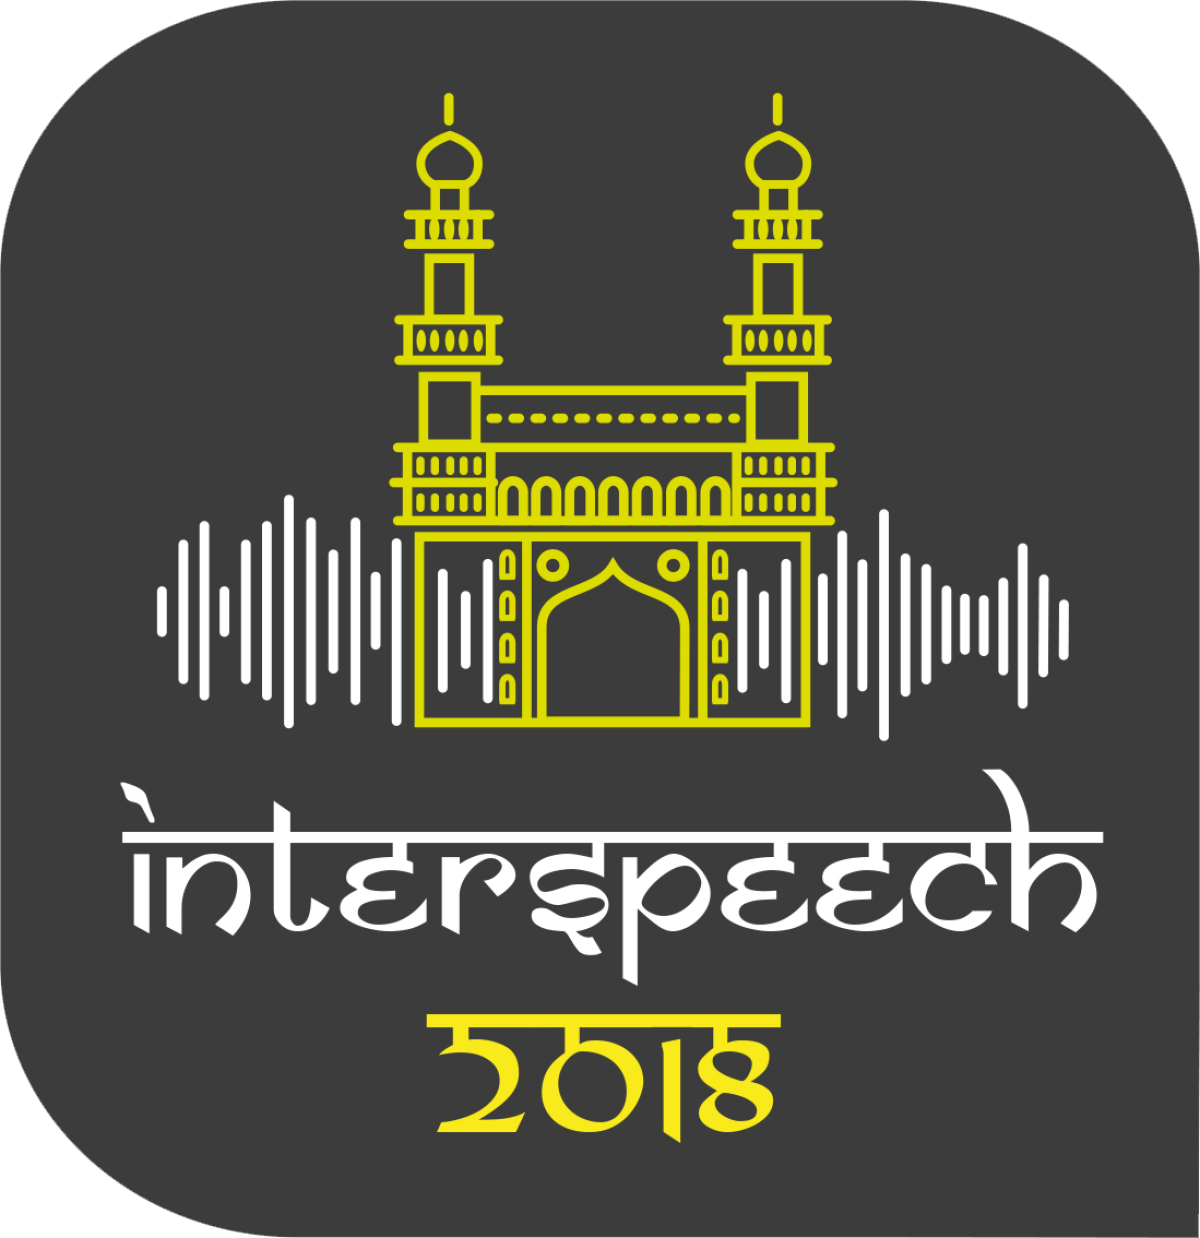 Interspeech 2018 logo